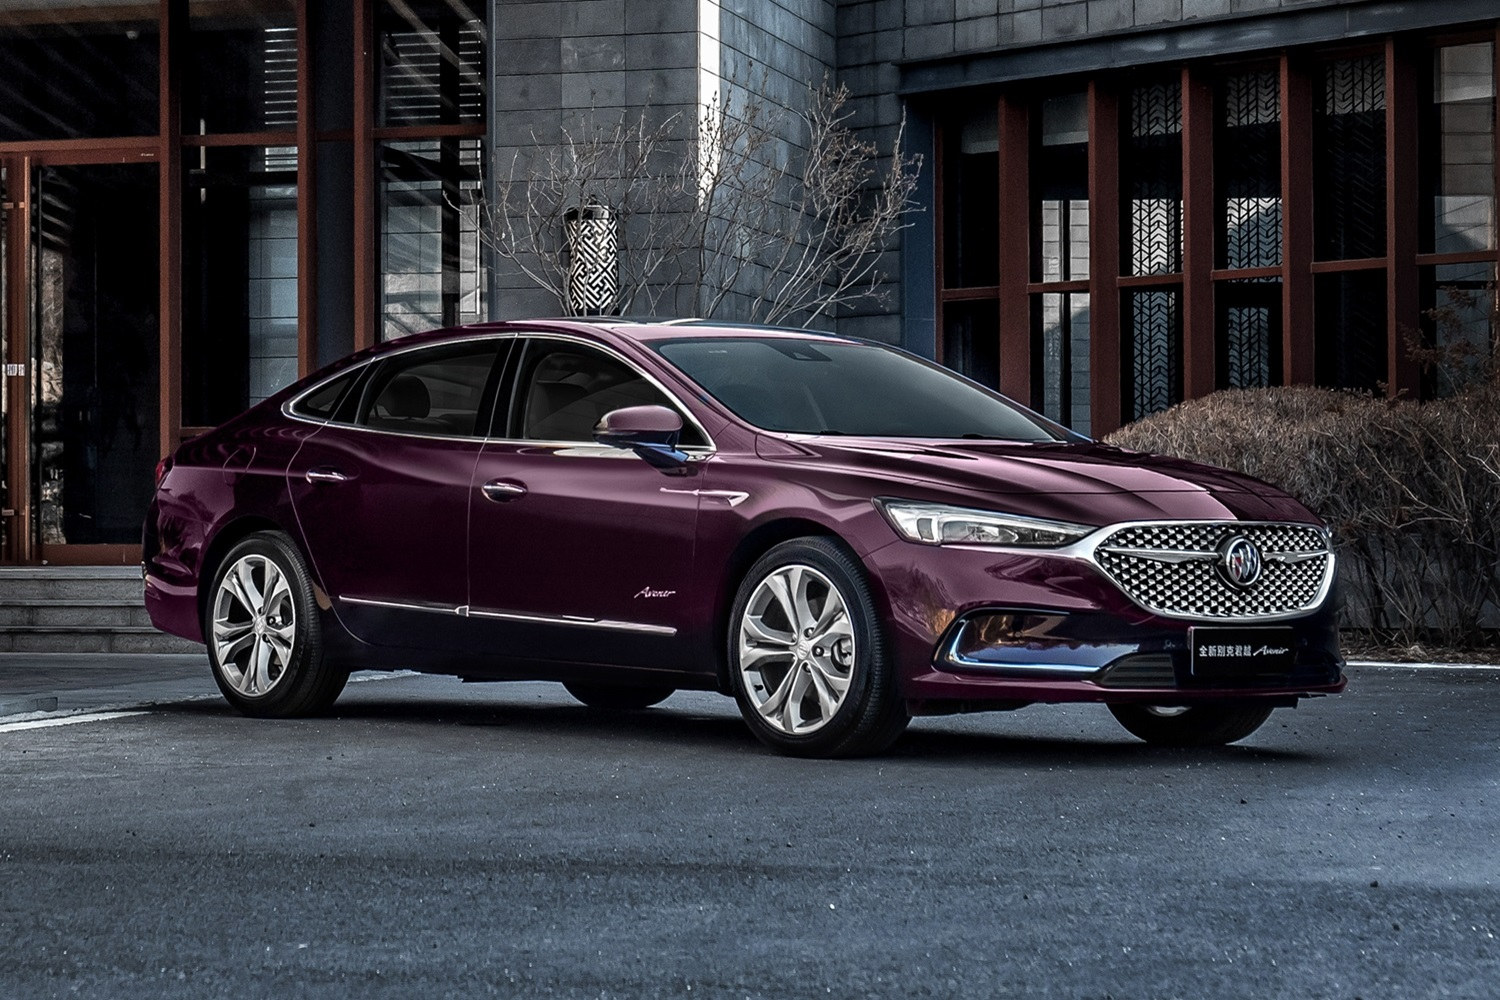 2021 Buick Lacrosse Gets More Refined Than Ever | Gm Authority New 2022 Buick Lacrosse Mpg, Engine, Price